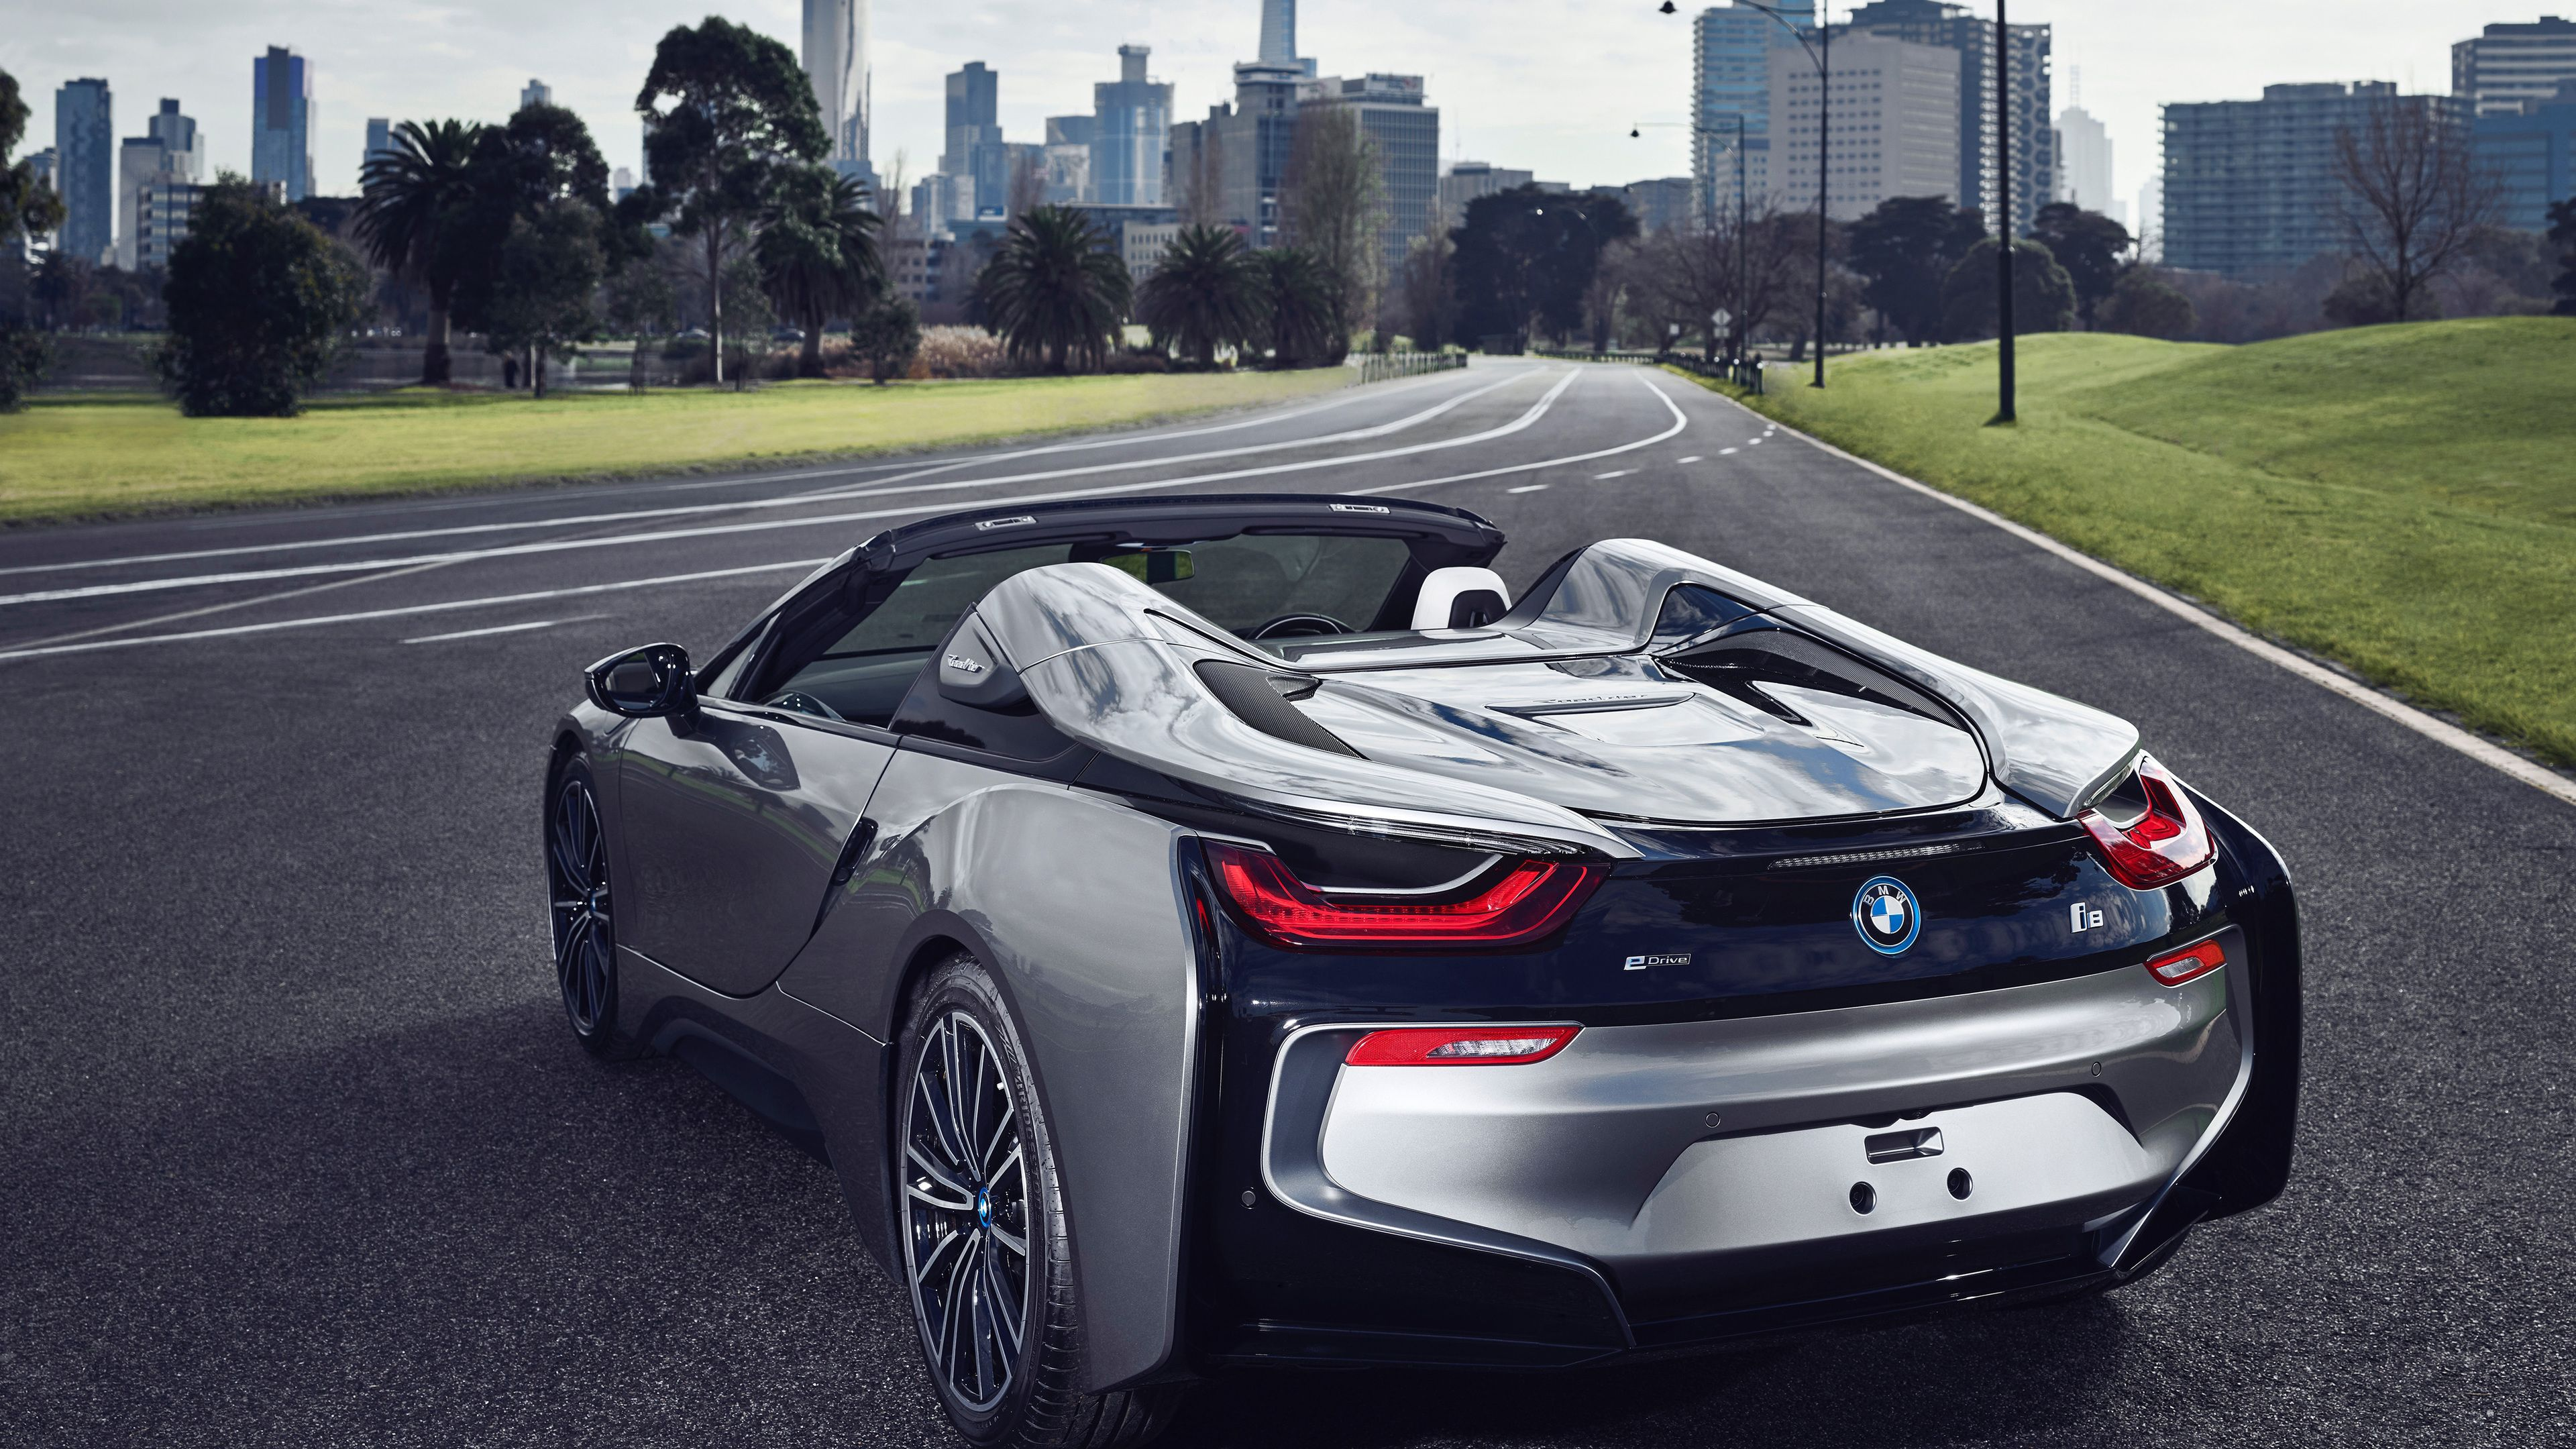 Bmw I8 Roadster 2018 Rear Hd Wallpapers Cars Wallpapers Bmw